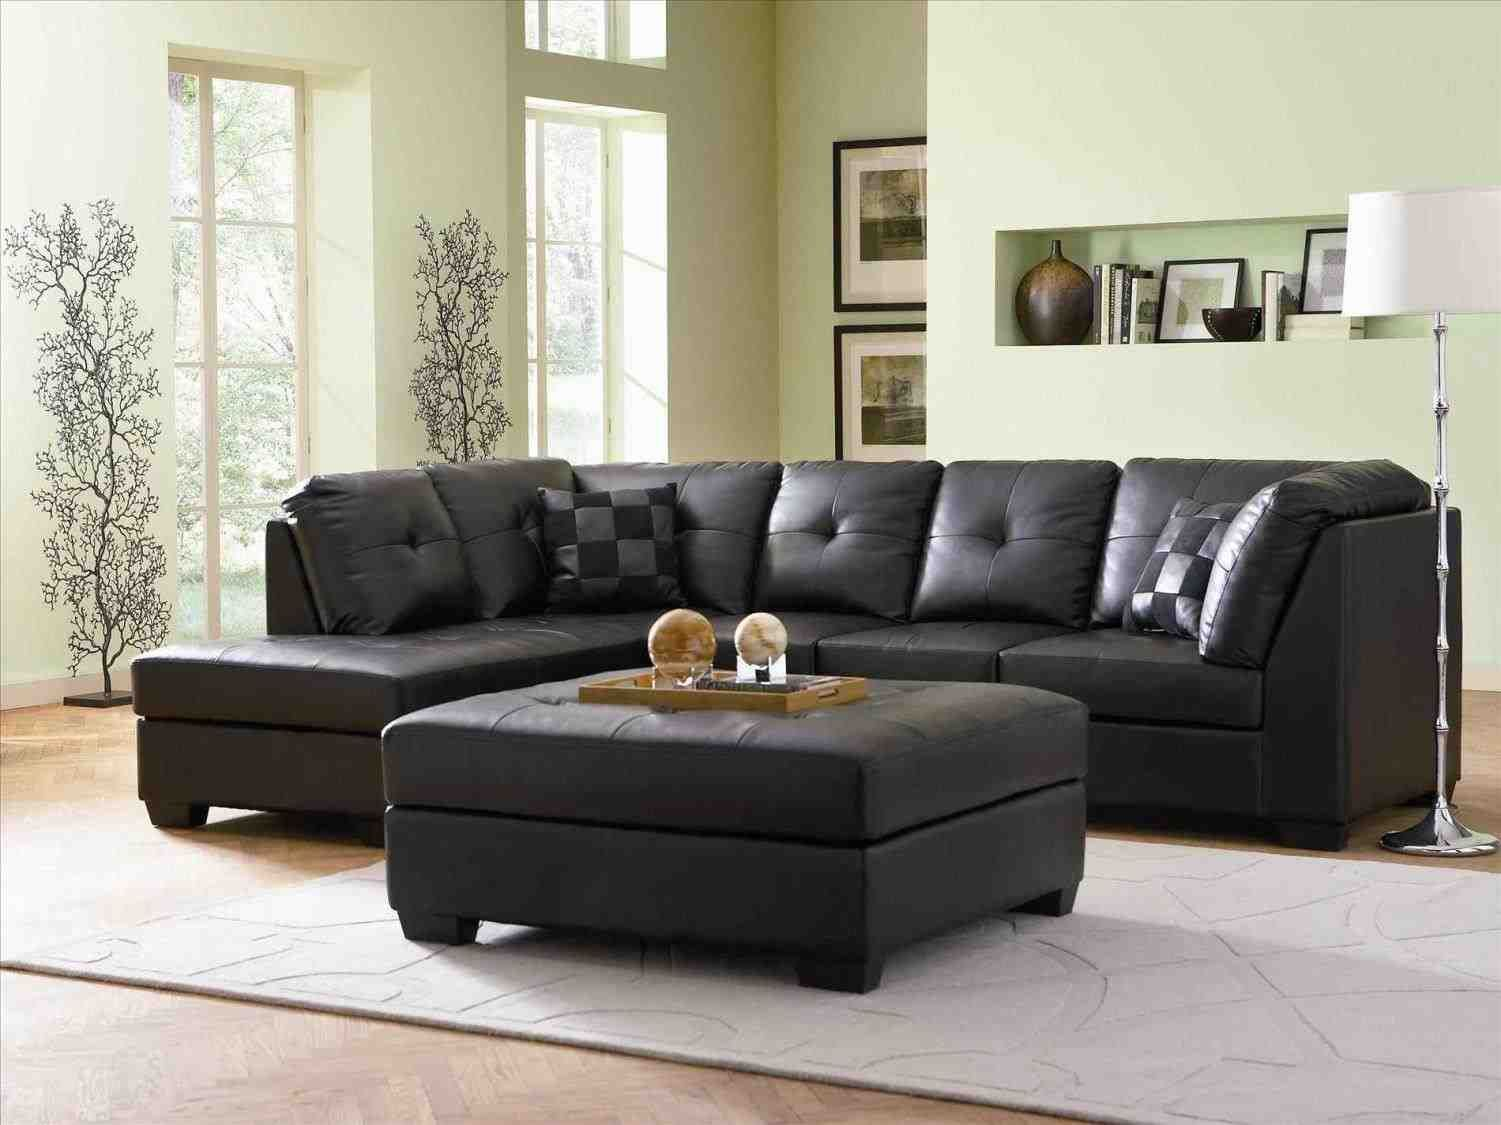 Sofa Sales In Glasgow Cheap Leather Sofas Glasgow Brown Leatherofas Dark Brownrofa